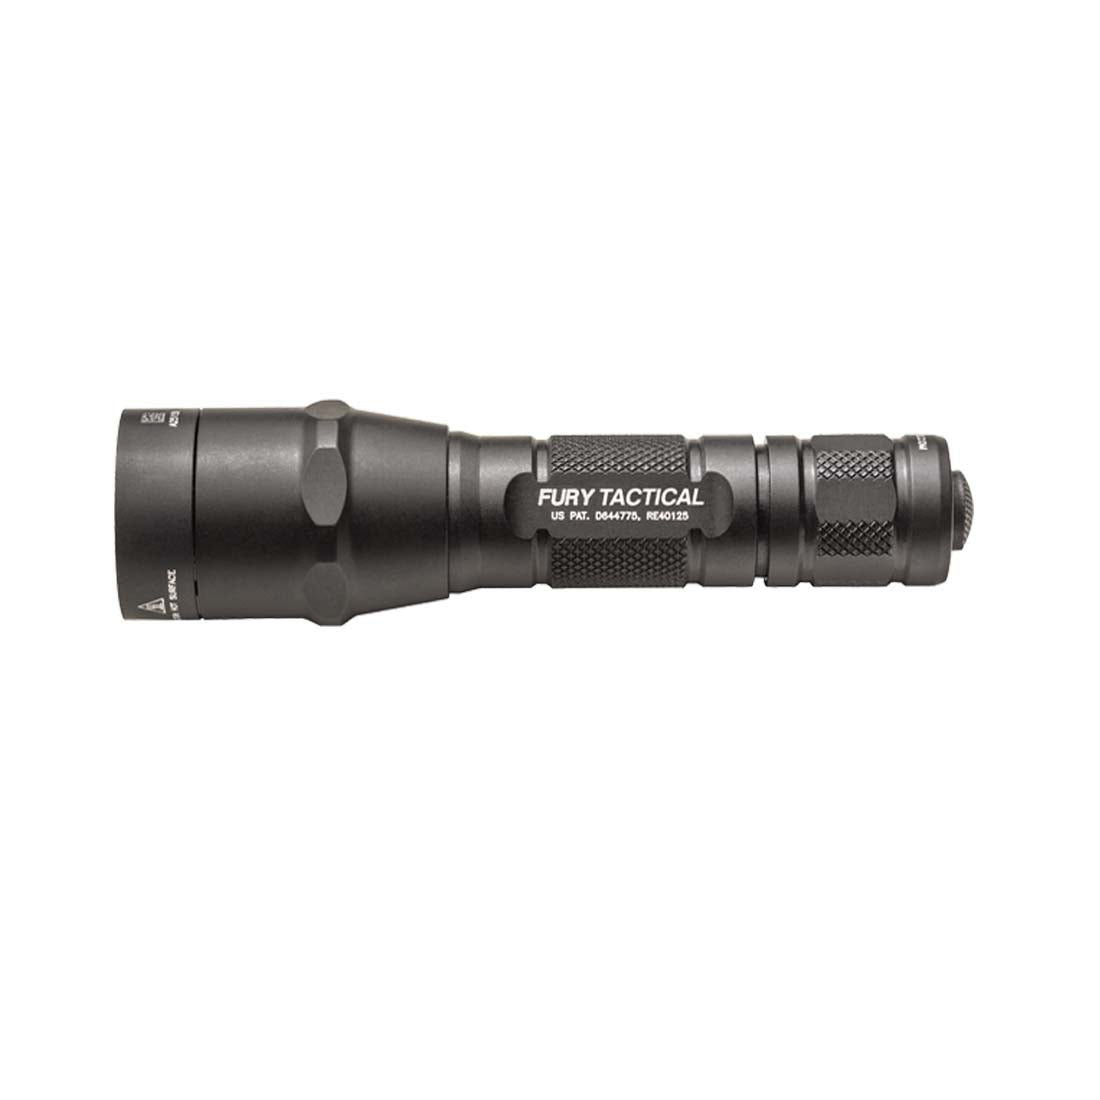 Surefire P2X Fury Tactical Single Output Led  Flashlight